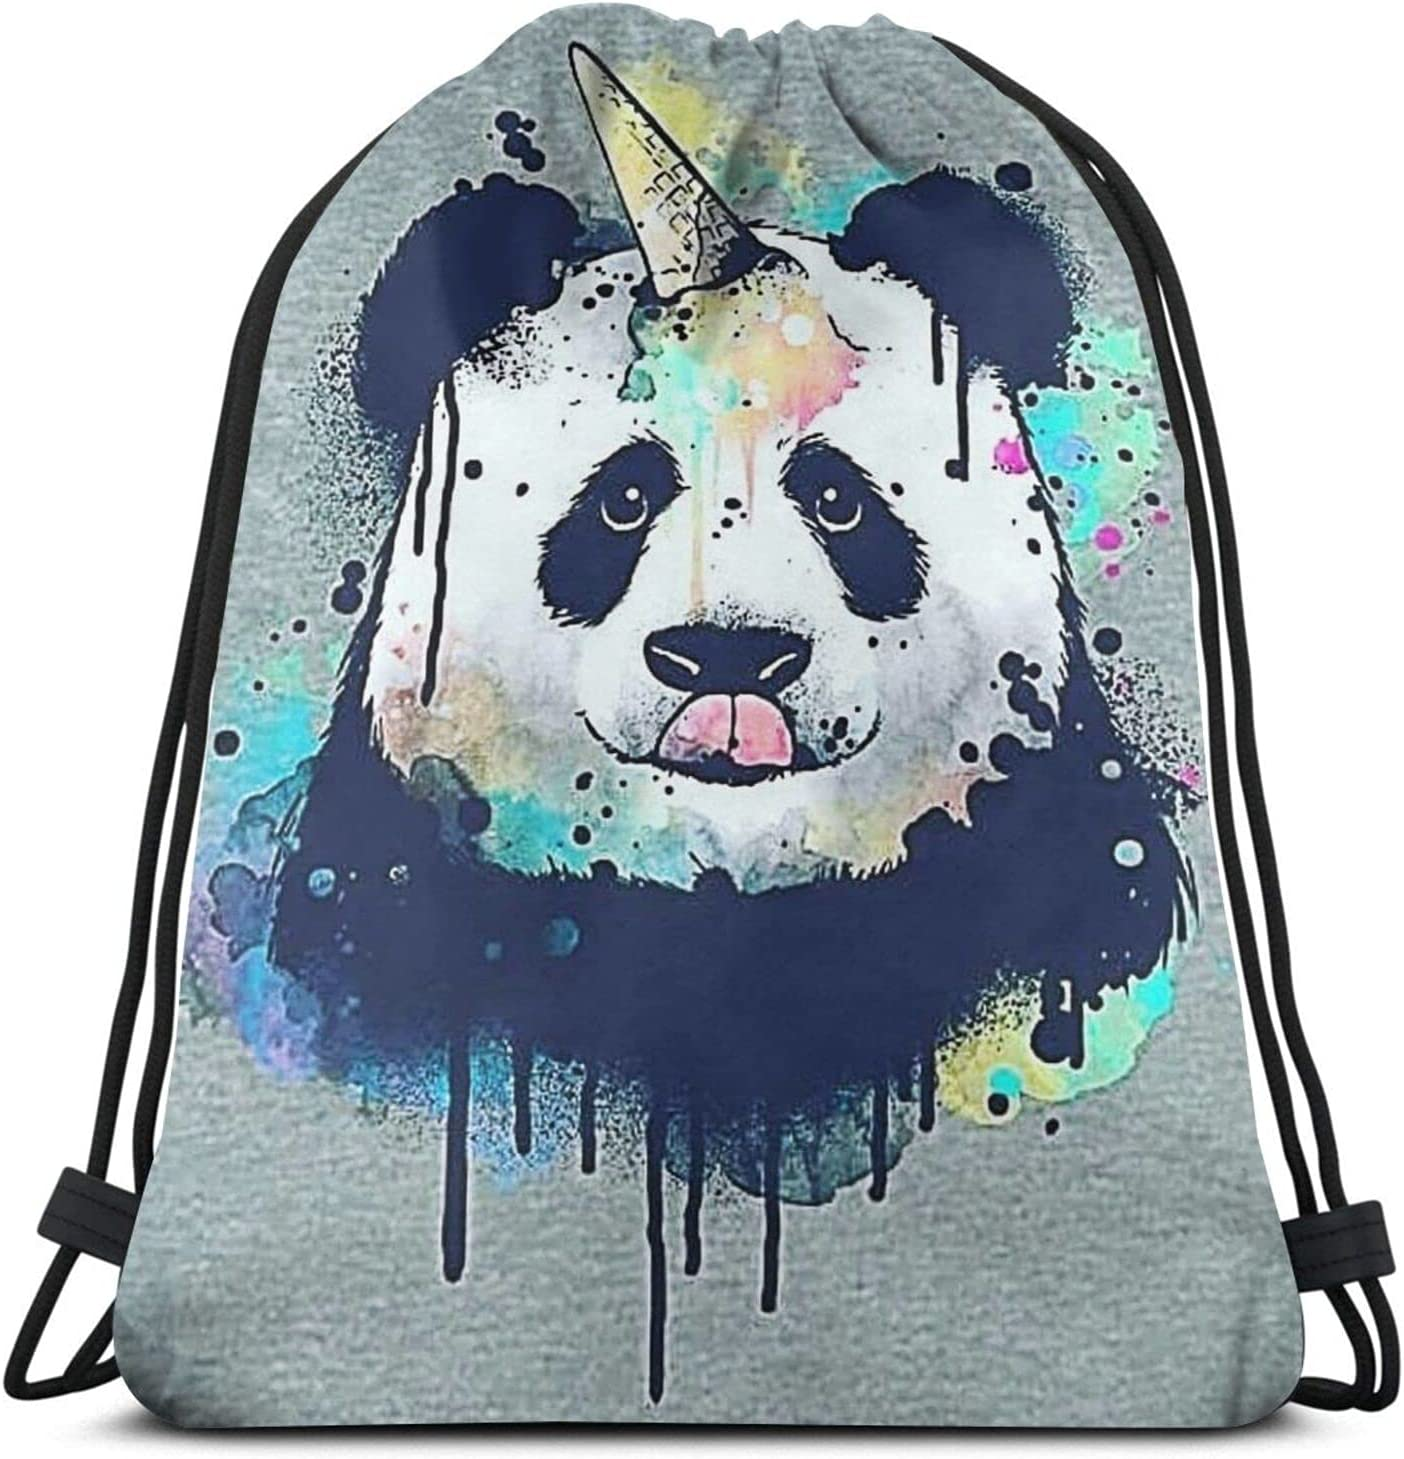 Ice Our shop OFFers the best service Cream SEAL limited product Pandacorn Watercolor Drawstring fashion Backpack Panda